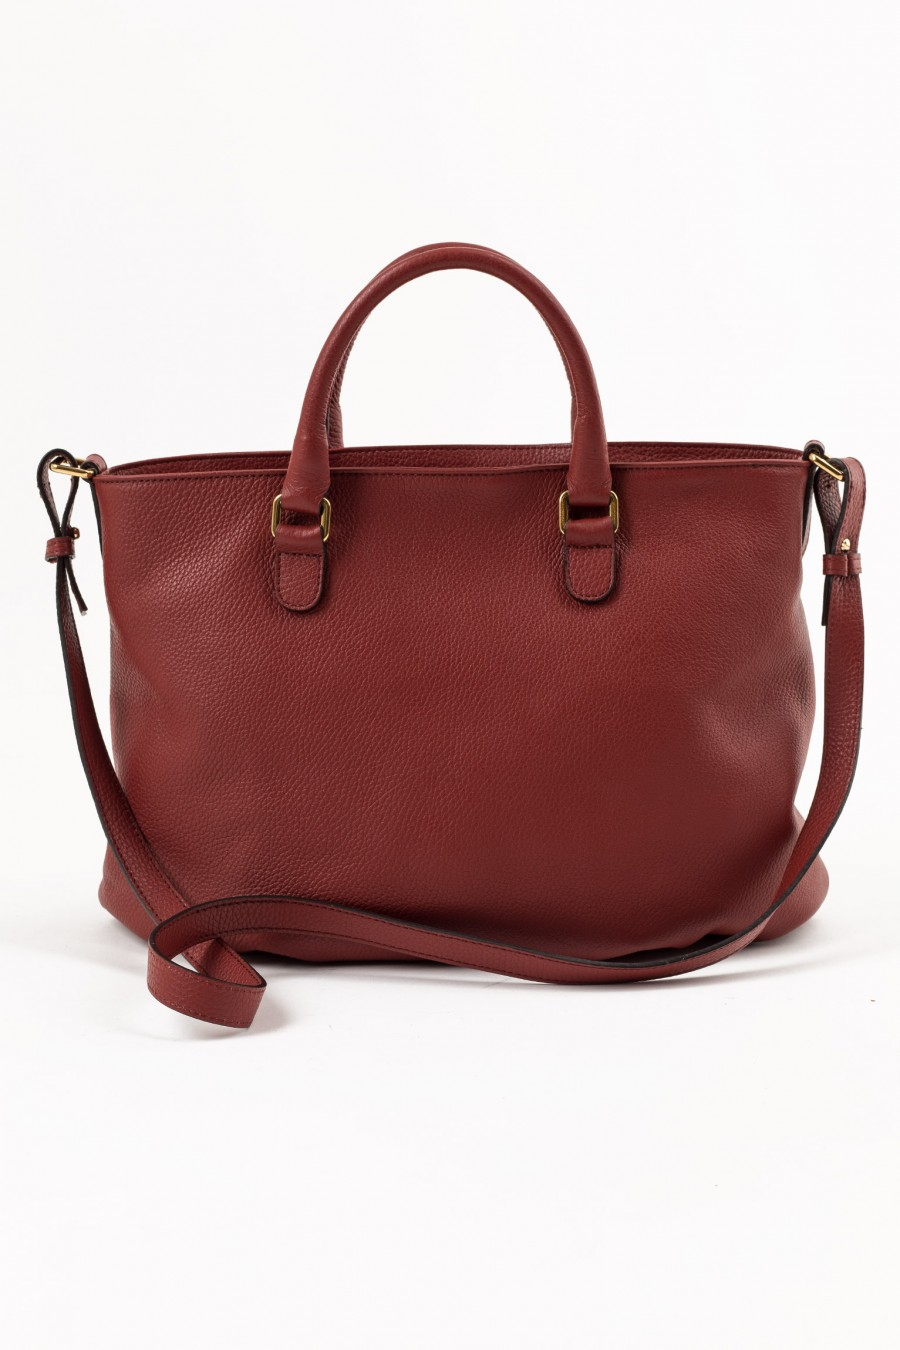 Large red bag